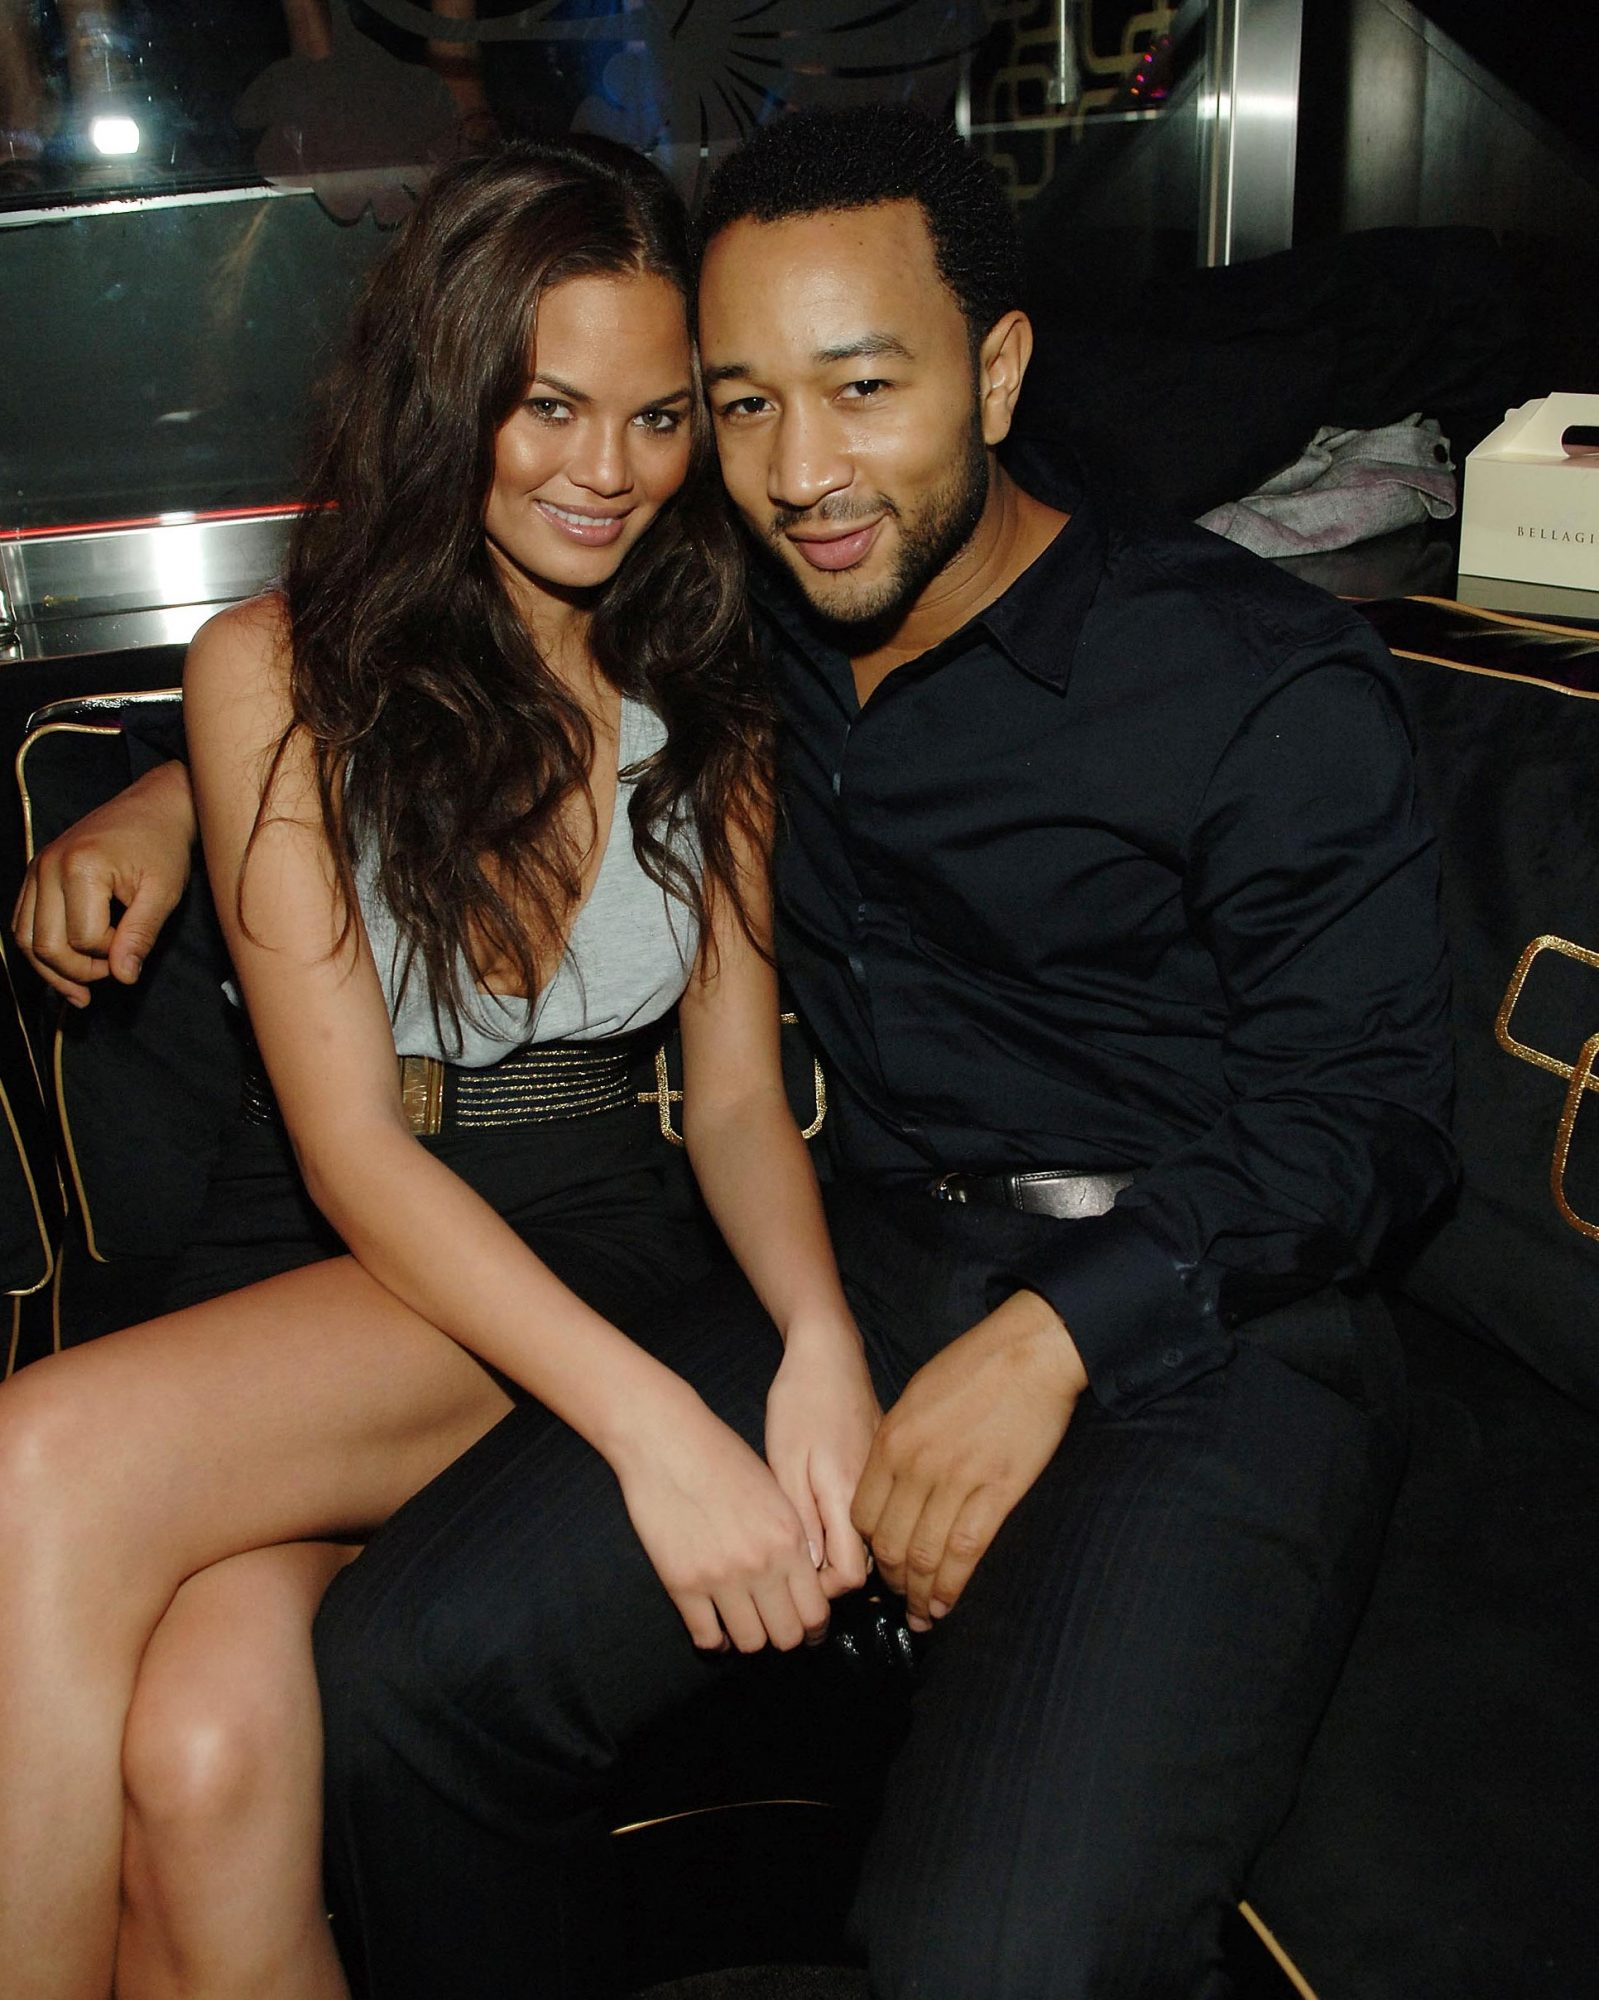 throwbacks-chrissy-teigen-john-legend-0616.jpg